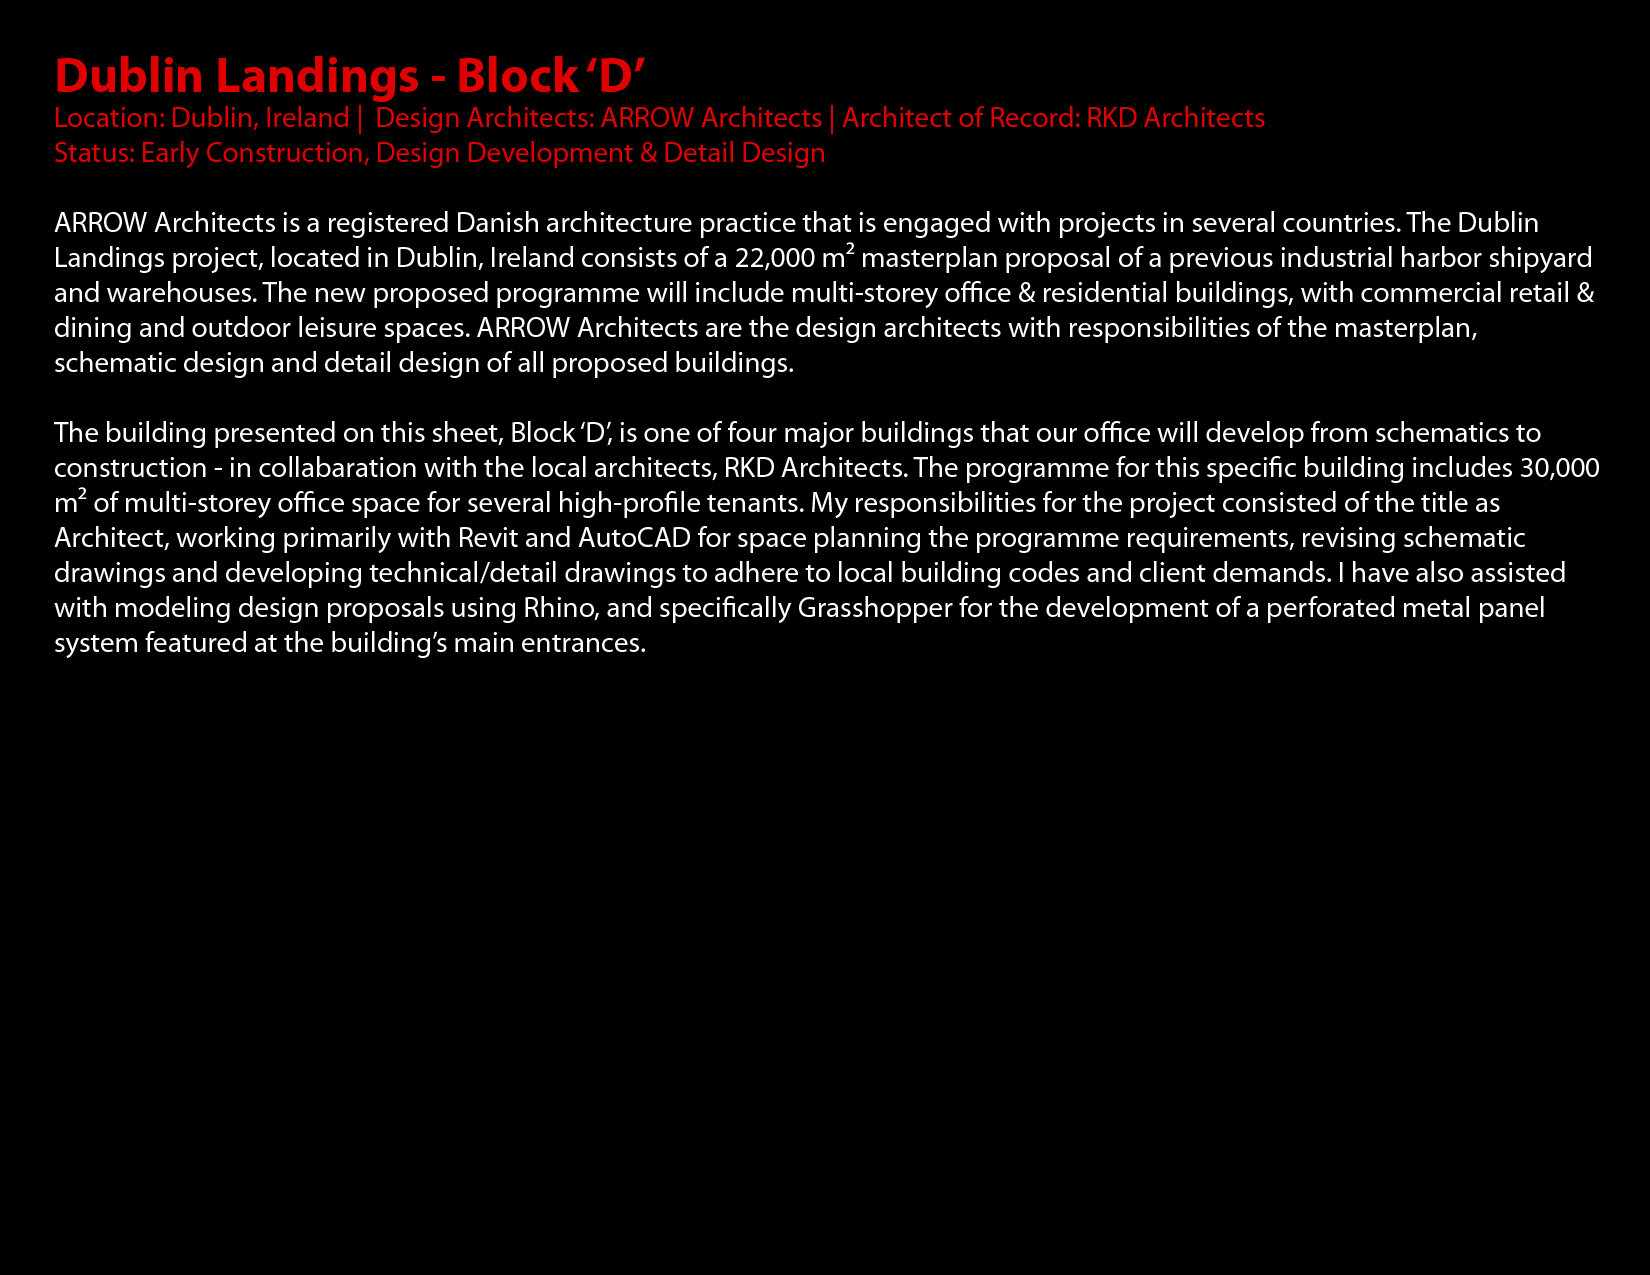 00.Project_Description-Dublin_Landings-16_0914.jpg